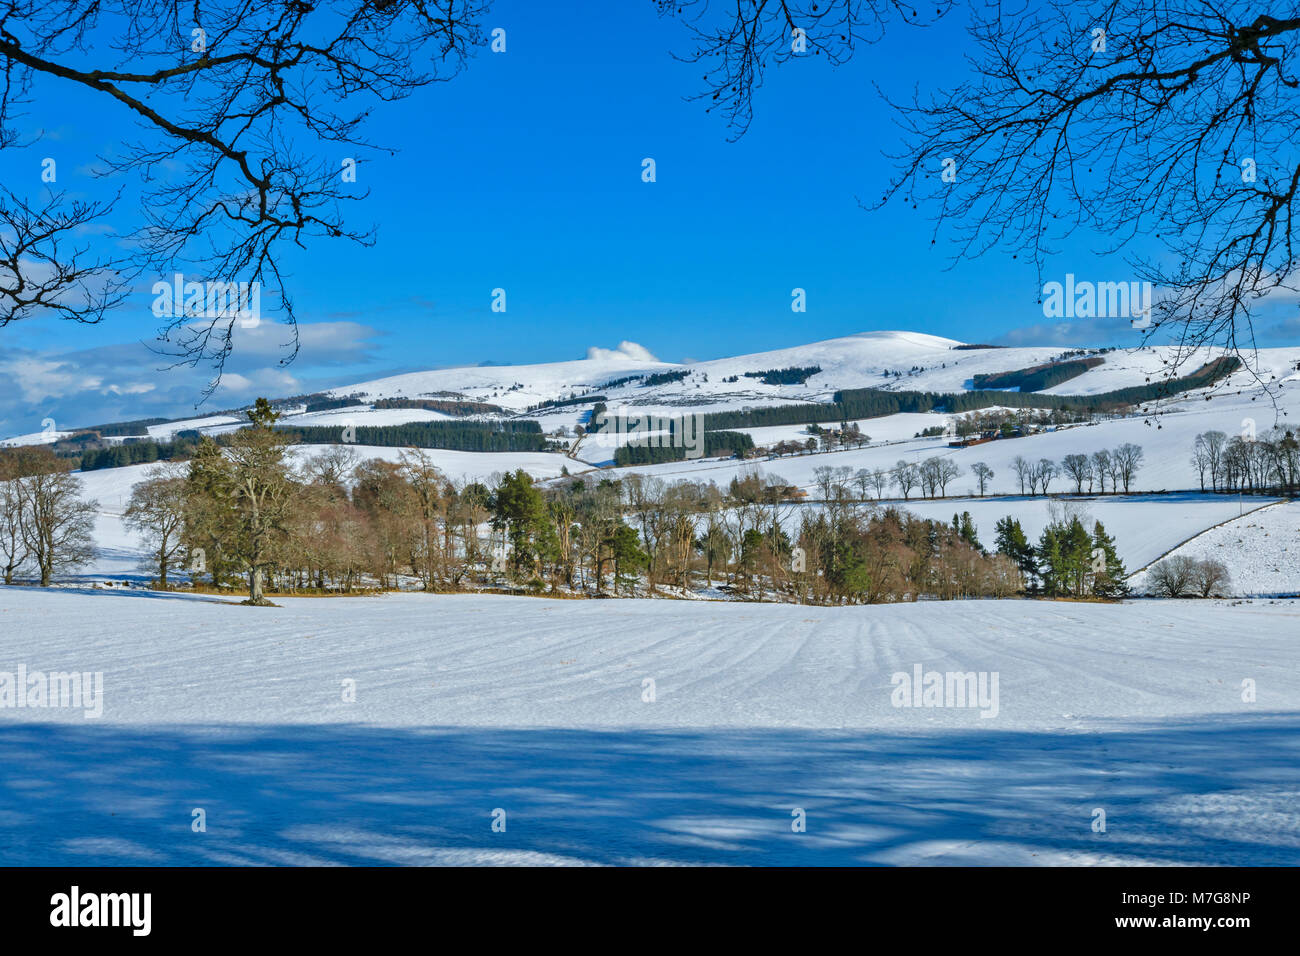 CRAIGIEVAR CASTLE ABERDEENSHIRE SCOTLAND VIEW OF SNOW COVERED COUNTRYSIDE FROM THE CASTLE GROUNDS - Stock Image